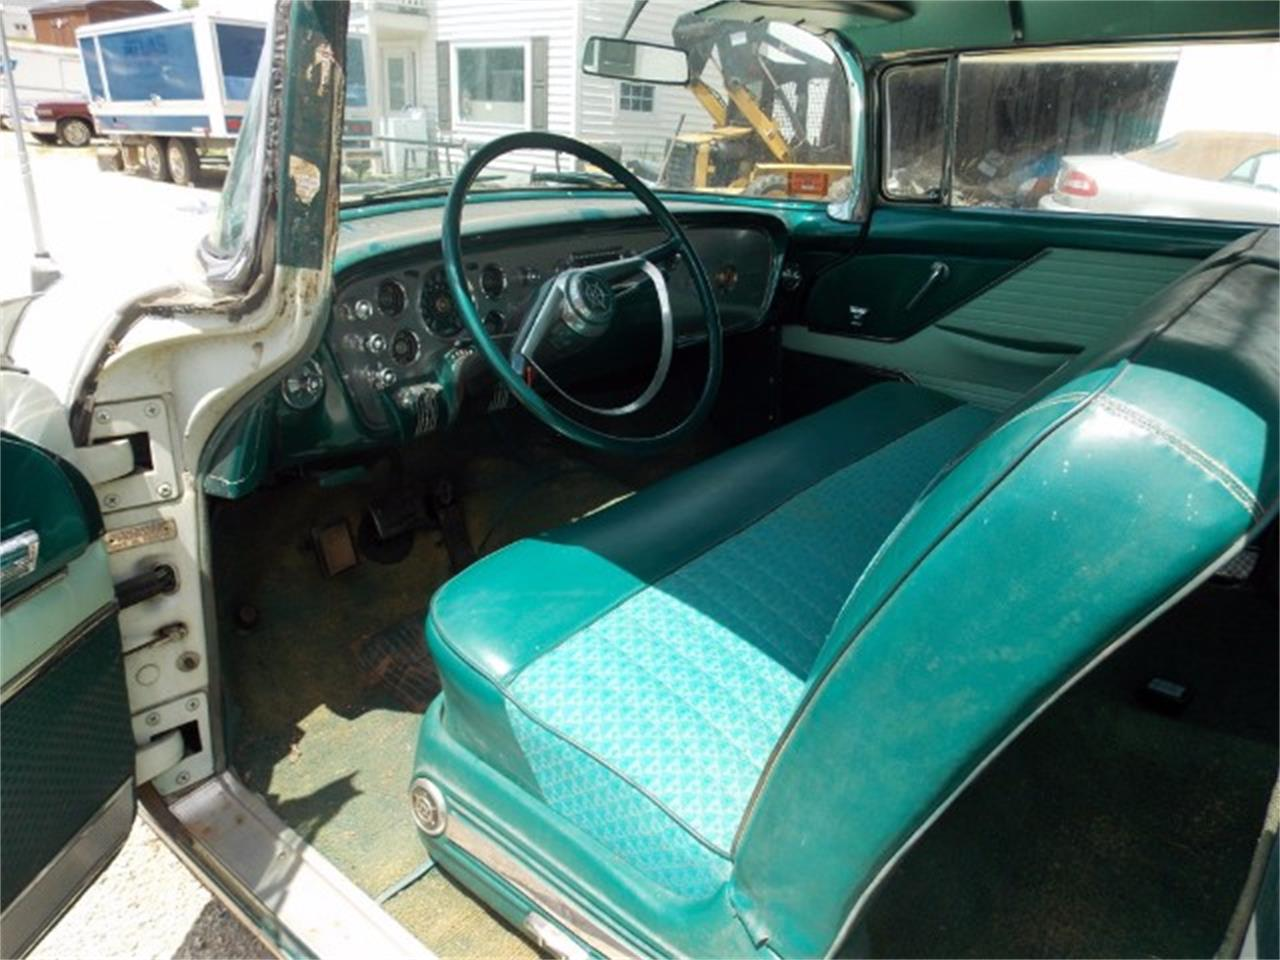 Large Picture of 1955 Packard Clipper located in South Carolina Offered by Classic Cars of South Carolina - LHA8